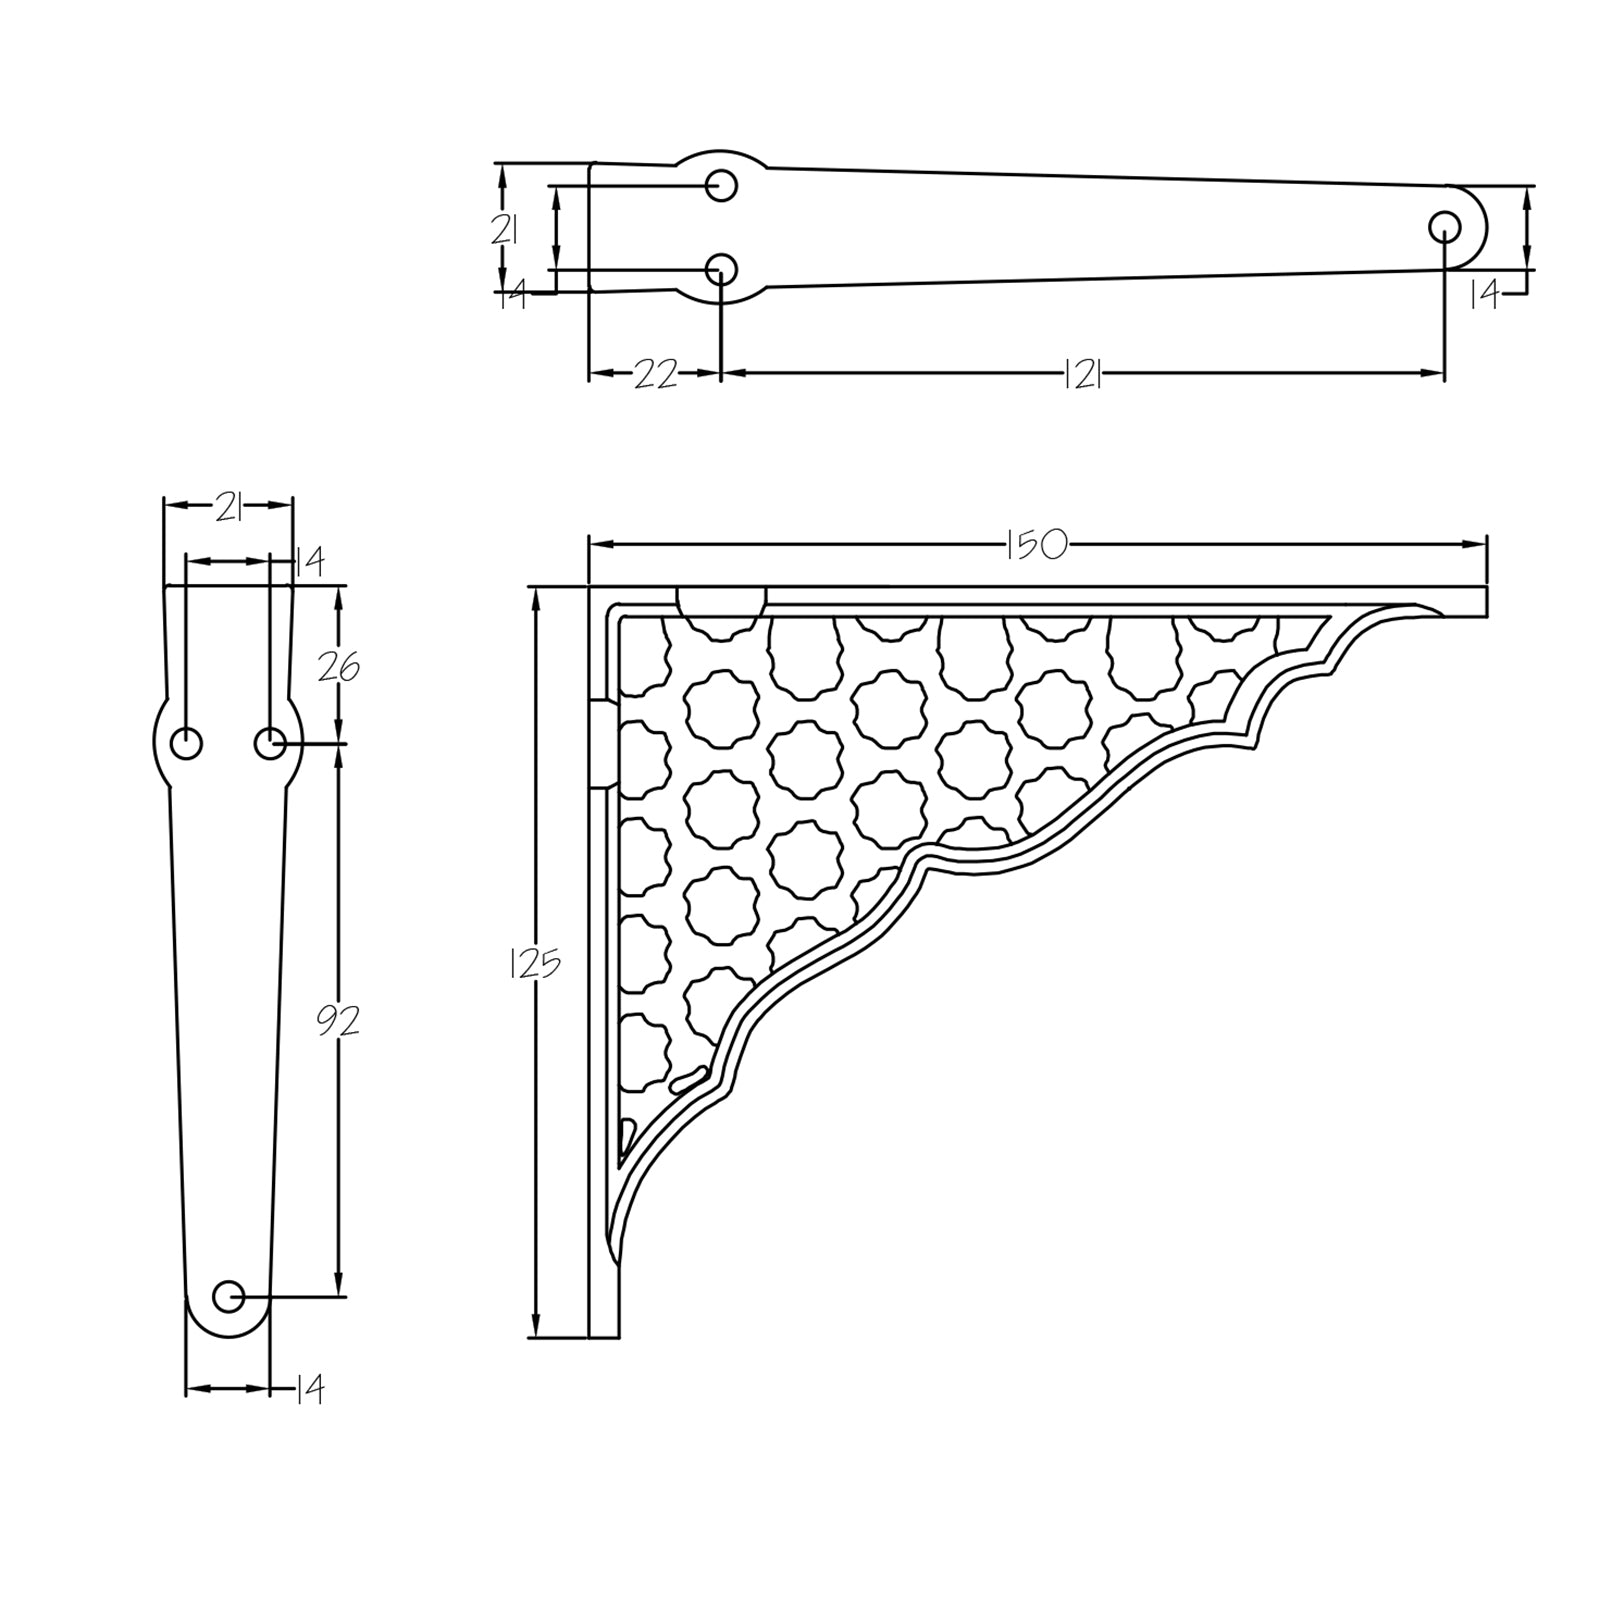 Dimension drawing of honeycomb shelf bracket SHOW